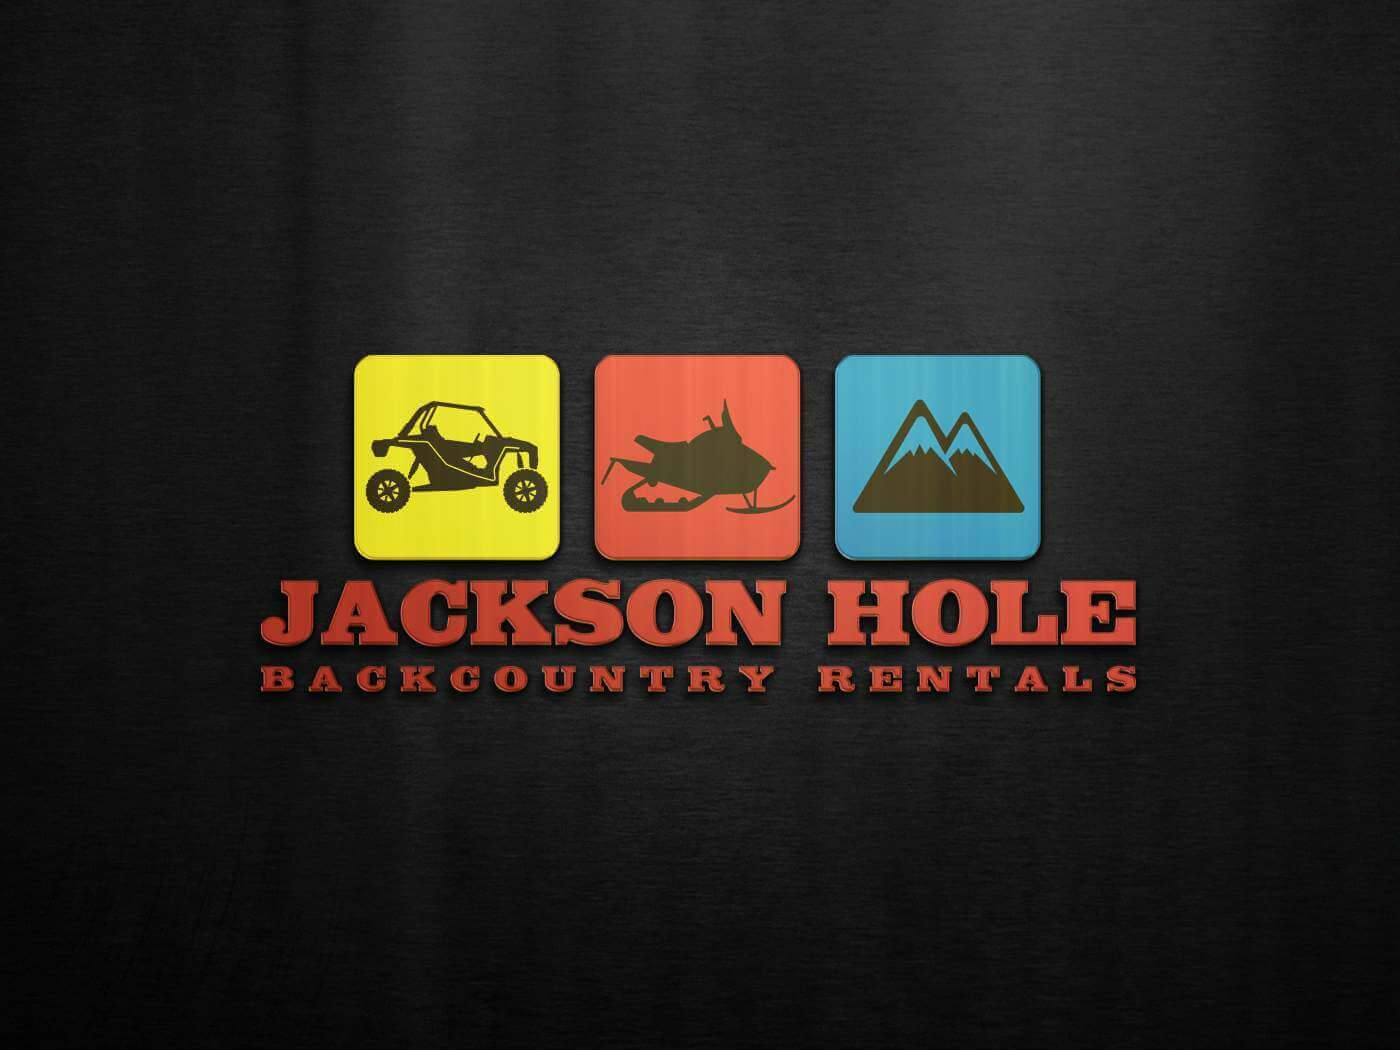 Jackson Hole Backcountry Rentals 🌲⛰